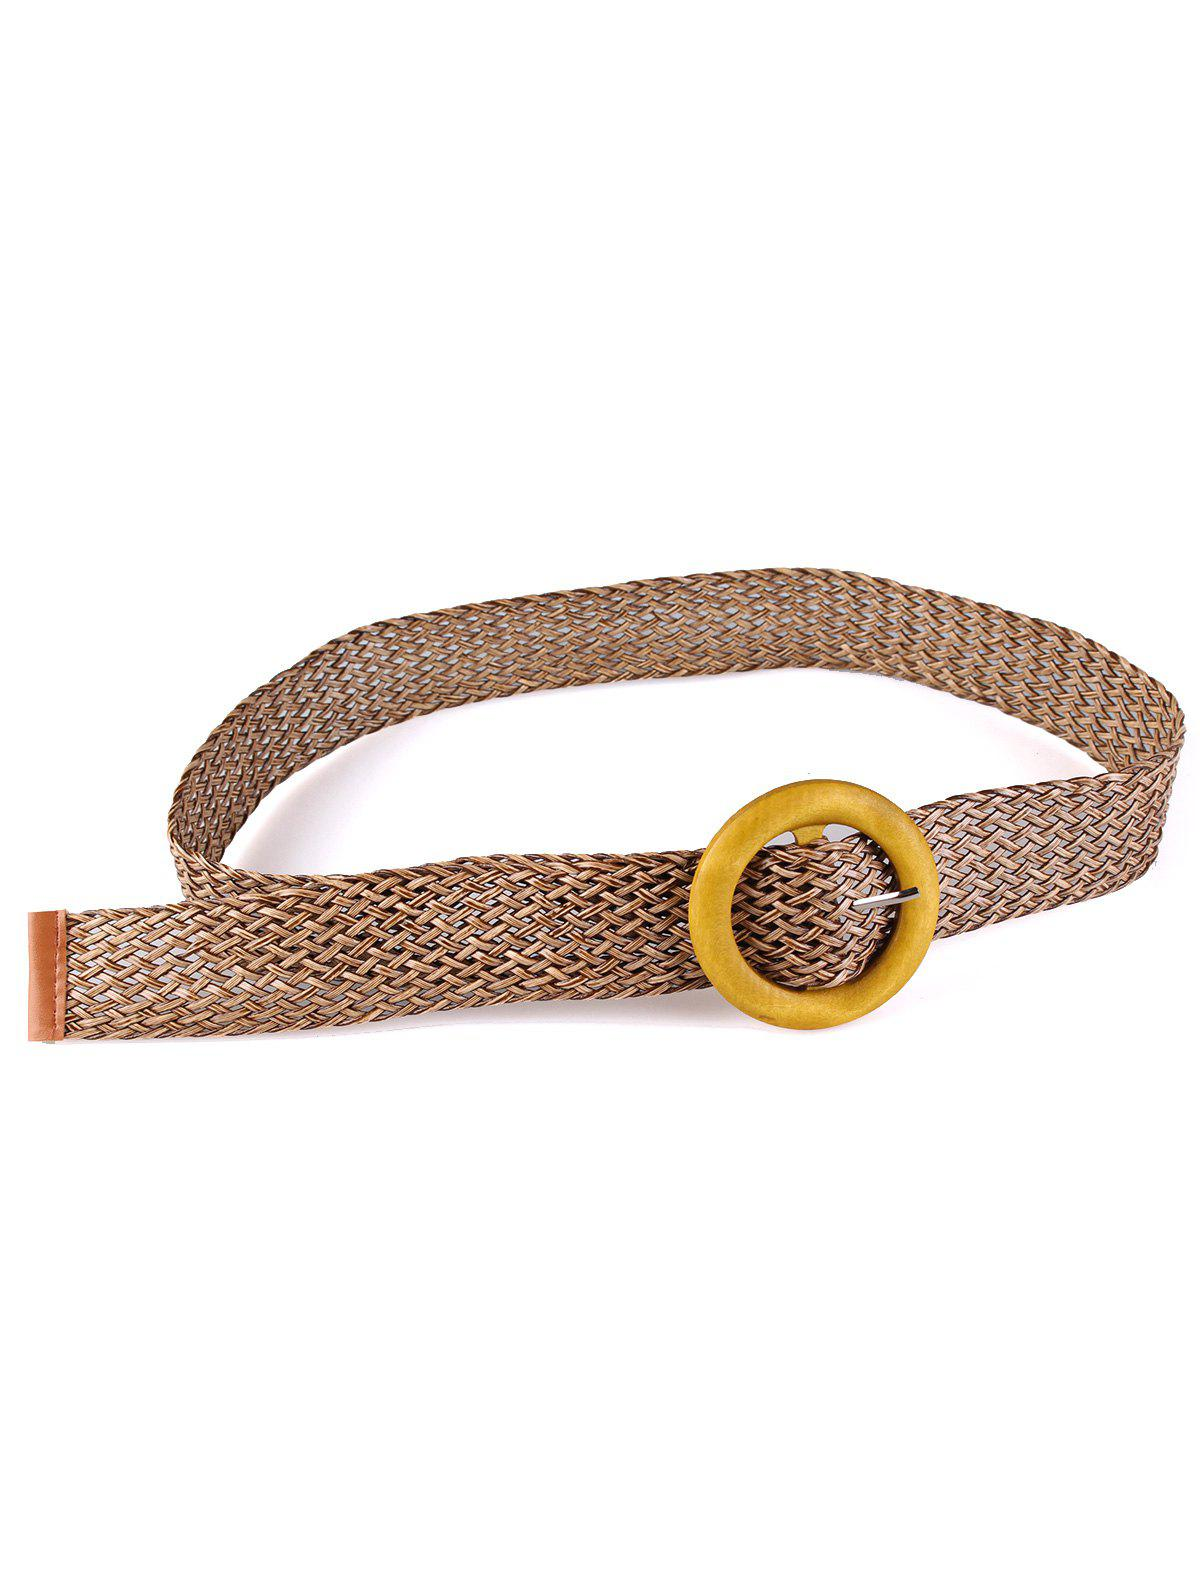 Ethnic Wooden Round Buckle Knit Waist Belt - DARK KHAKI